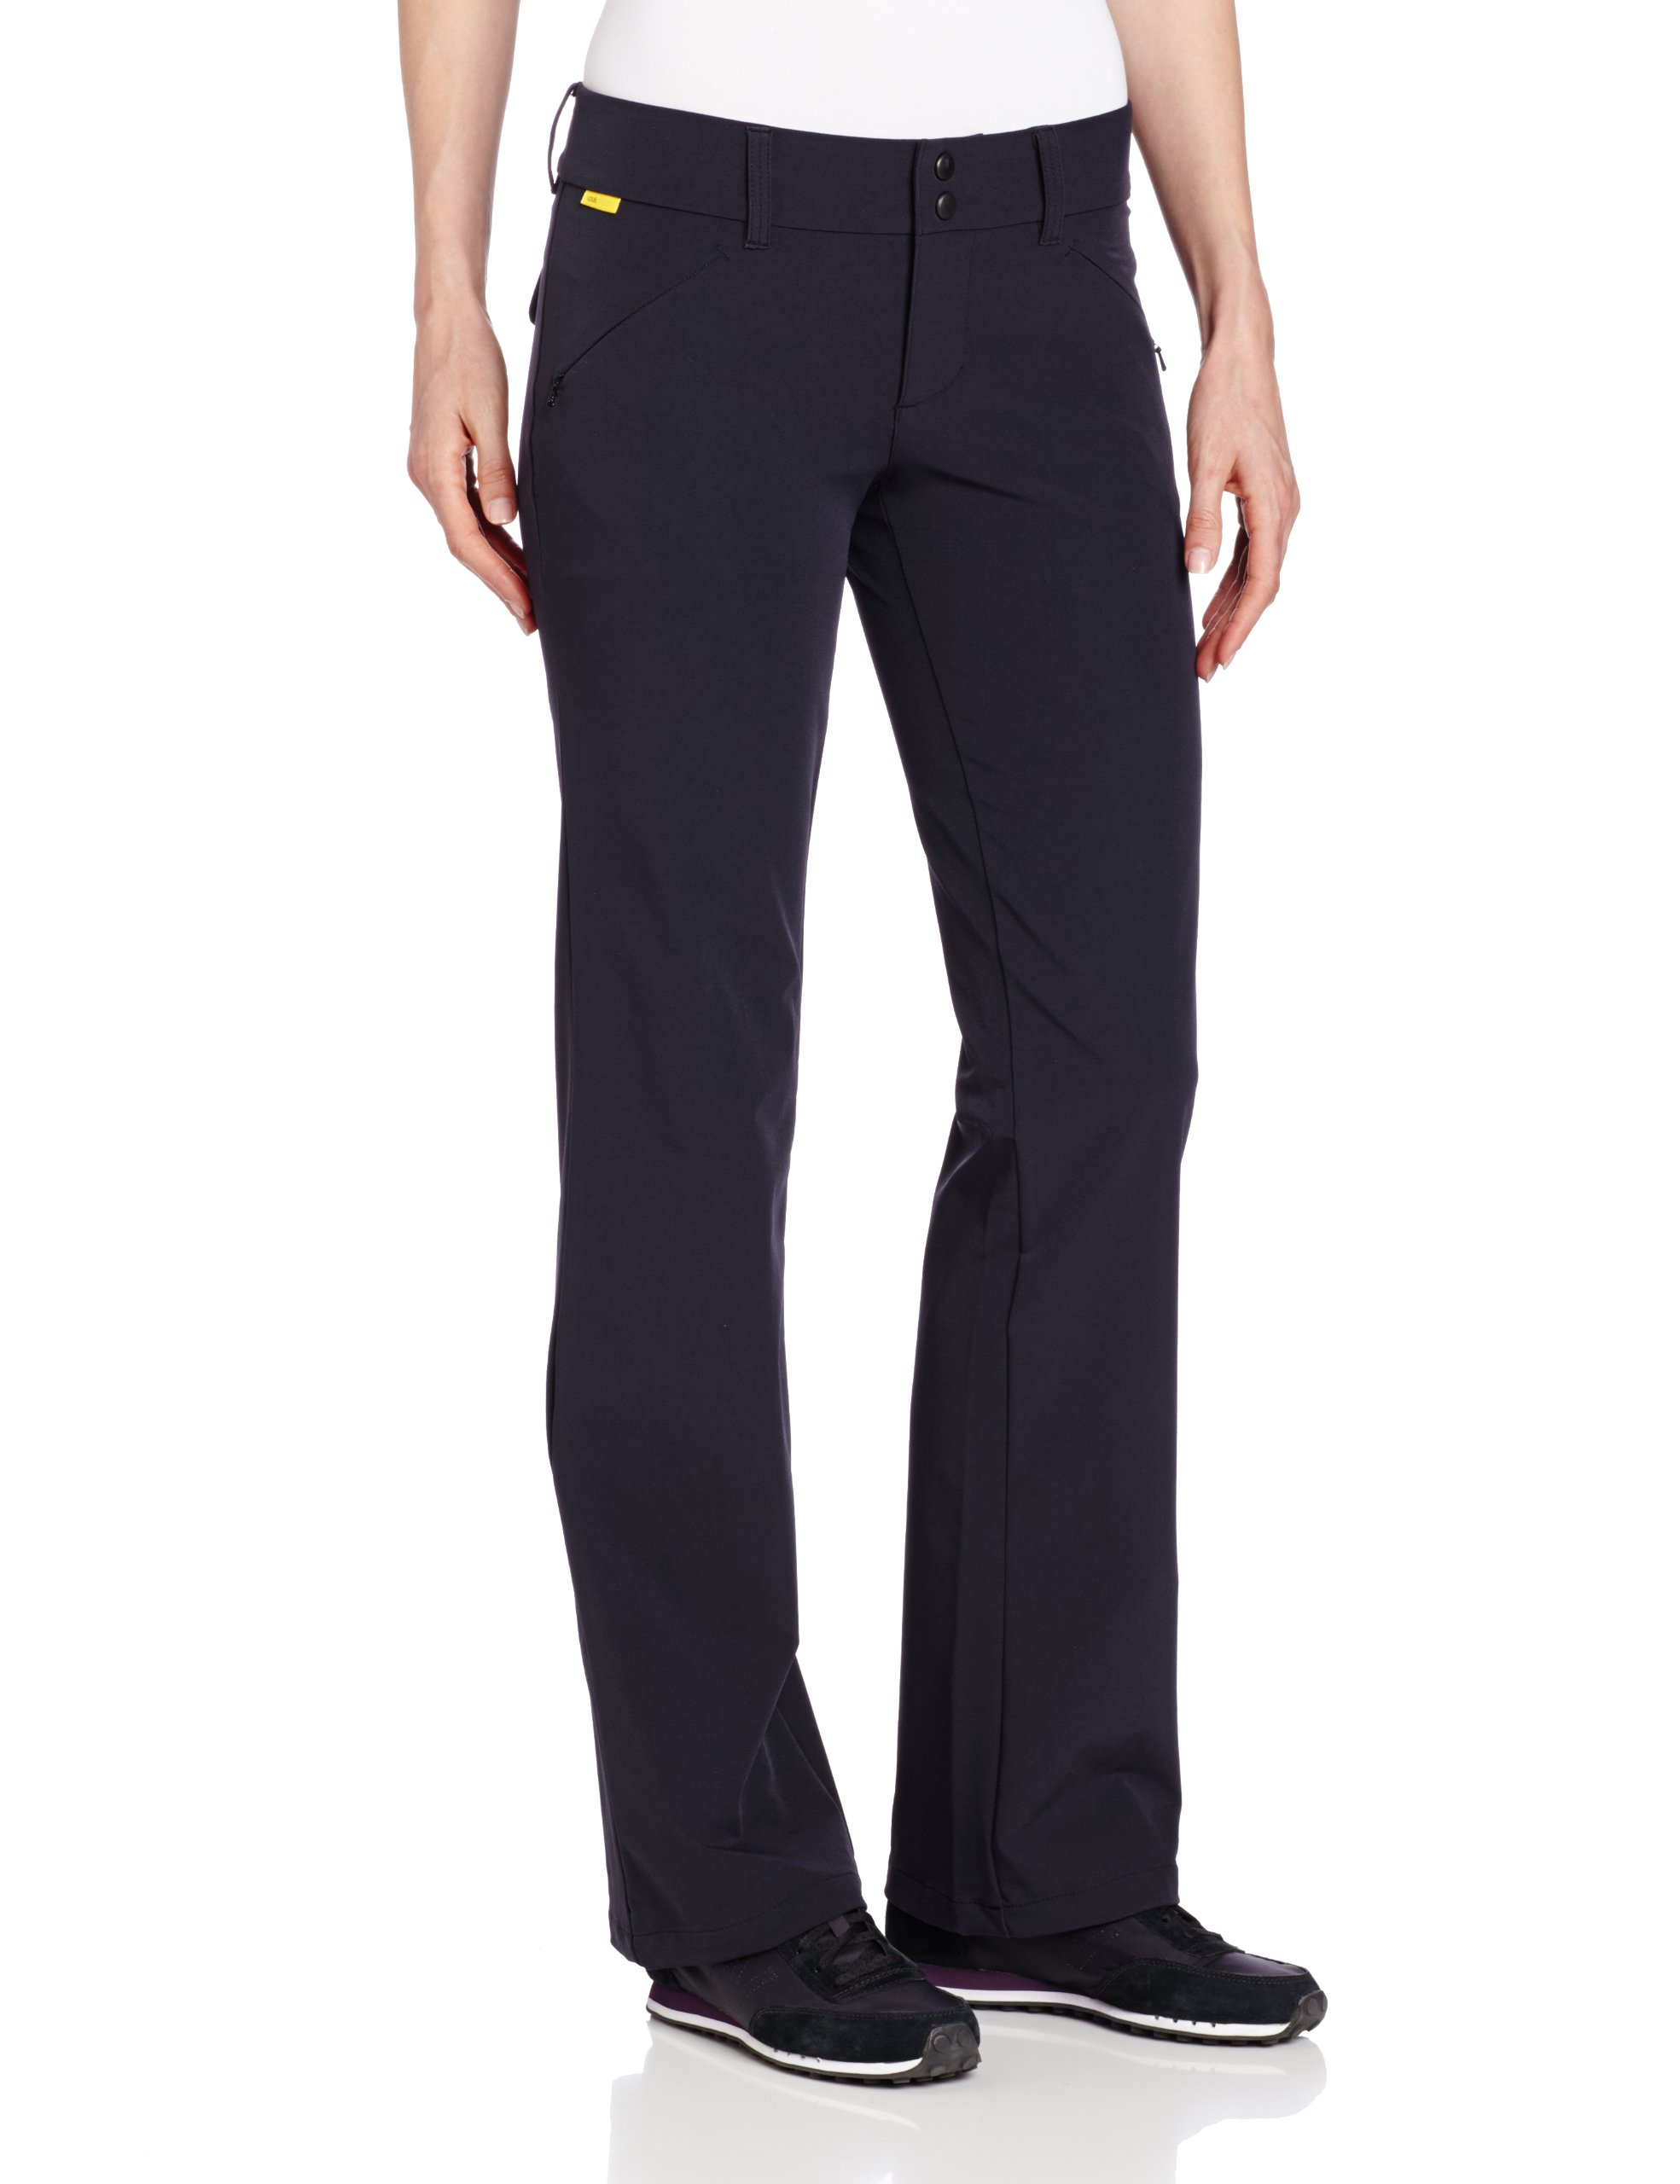 Lole Women's 33-Inch Travel Pant, Black, 6